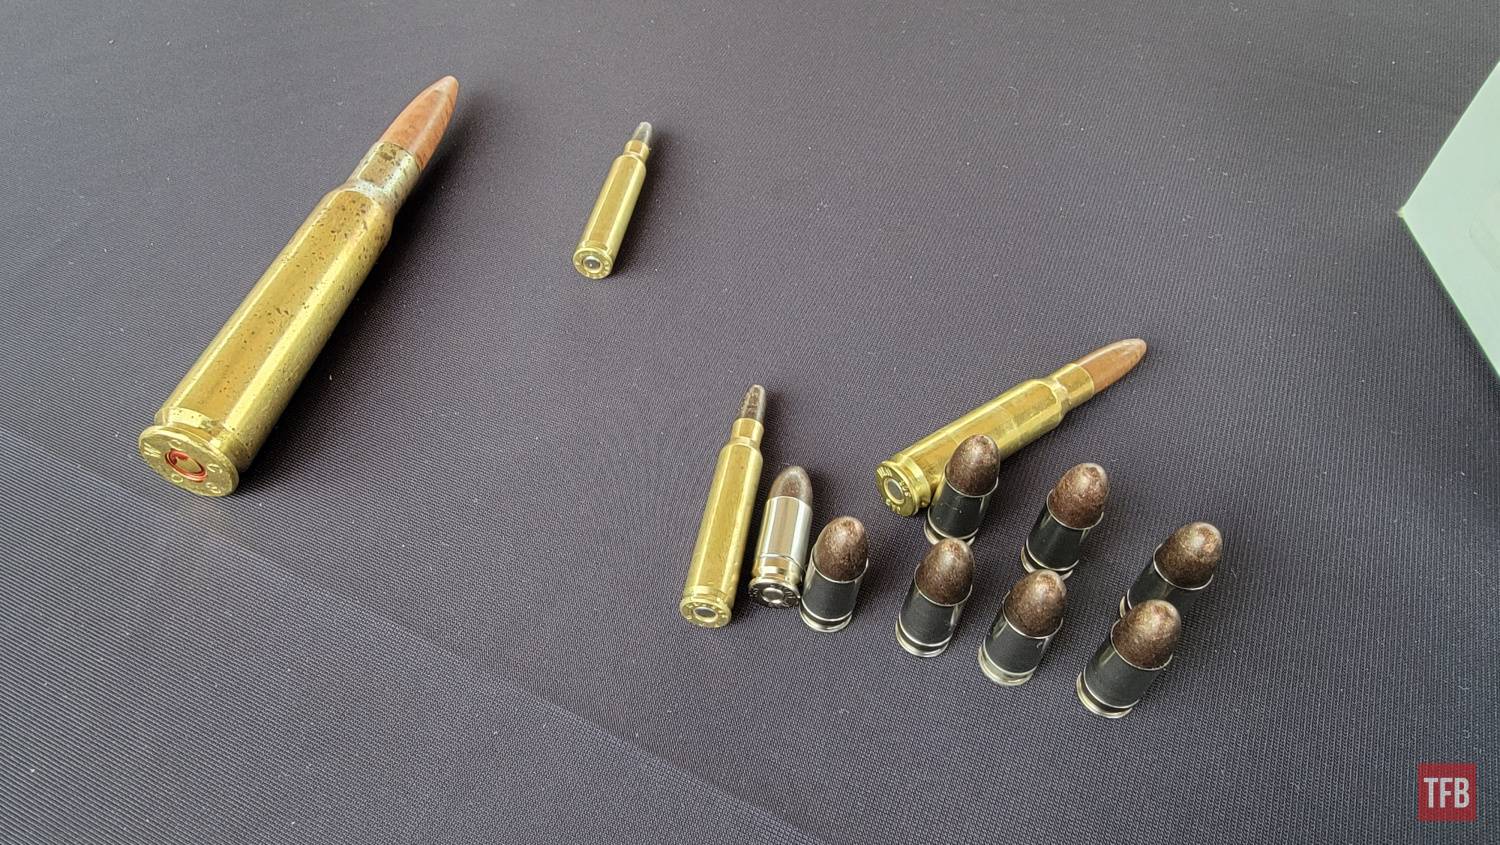 nP Technology Lead-Free Frangible Projectiles for Reloaders